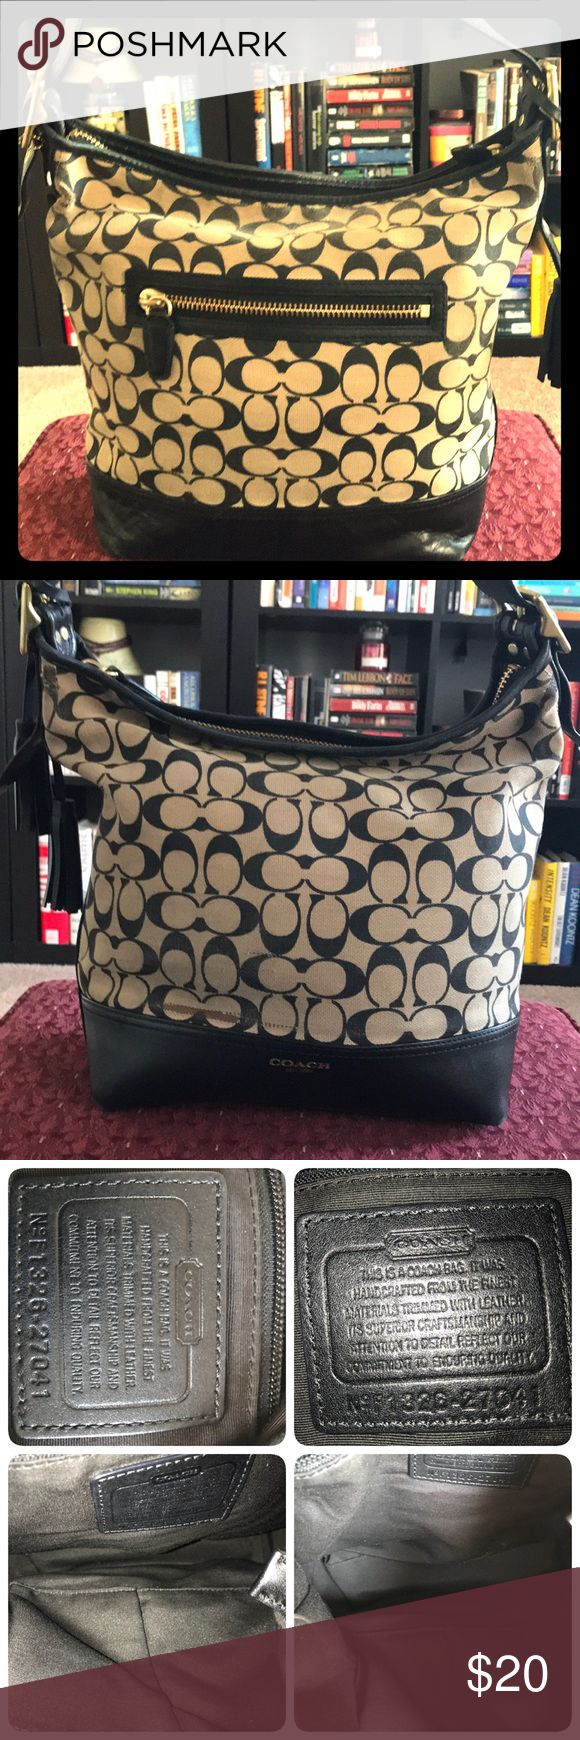 🖤Adorable Black and Tan Coach satchel purse🖤 👜 This authentic Coach satchel has definitely been well loved. Picked up at a thrift store, in similar condition. Signs of wear near closures and some snagging on the outside front (see pics for detail). Liner is fairly clean and stain free. 👜 Coach Bags Satchels